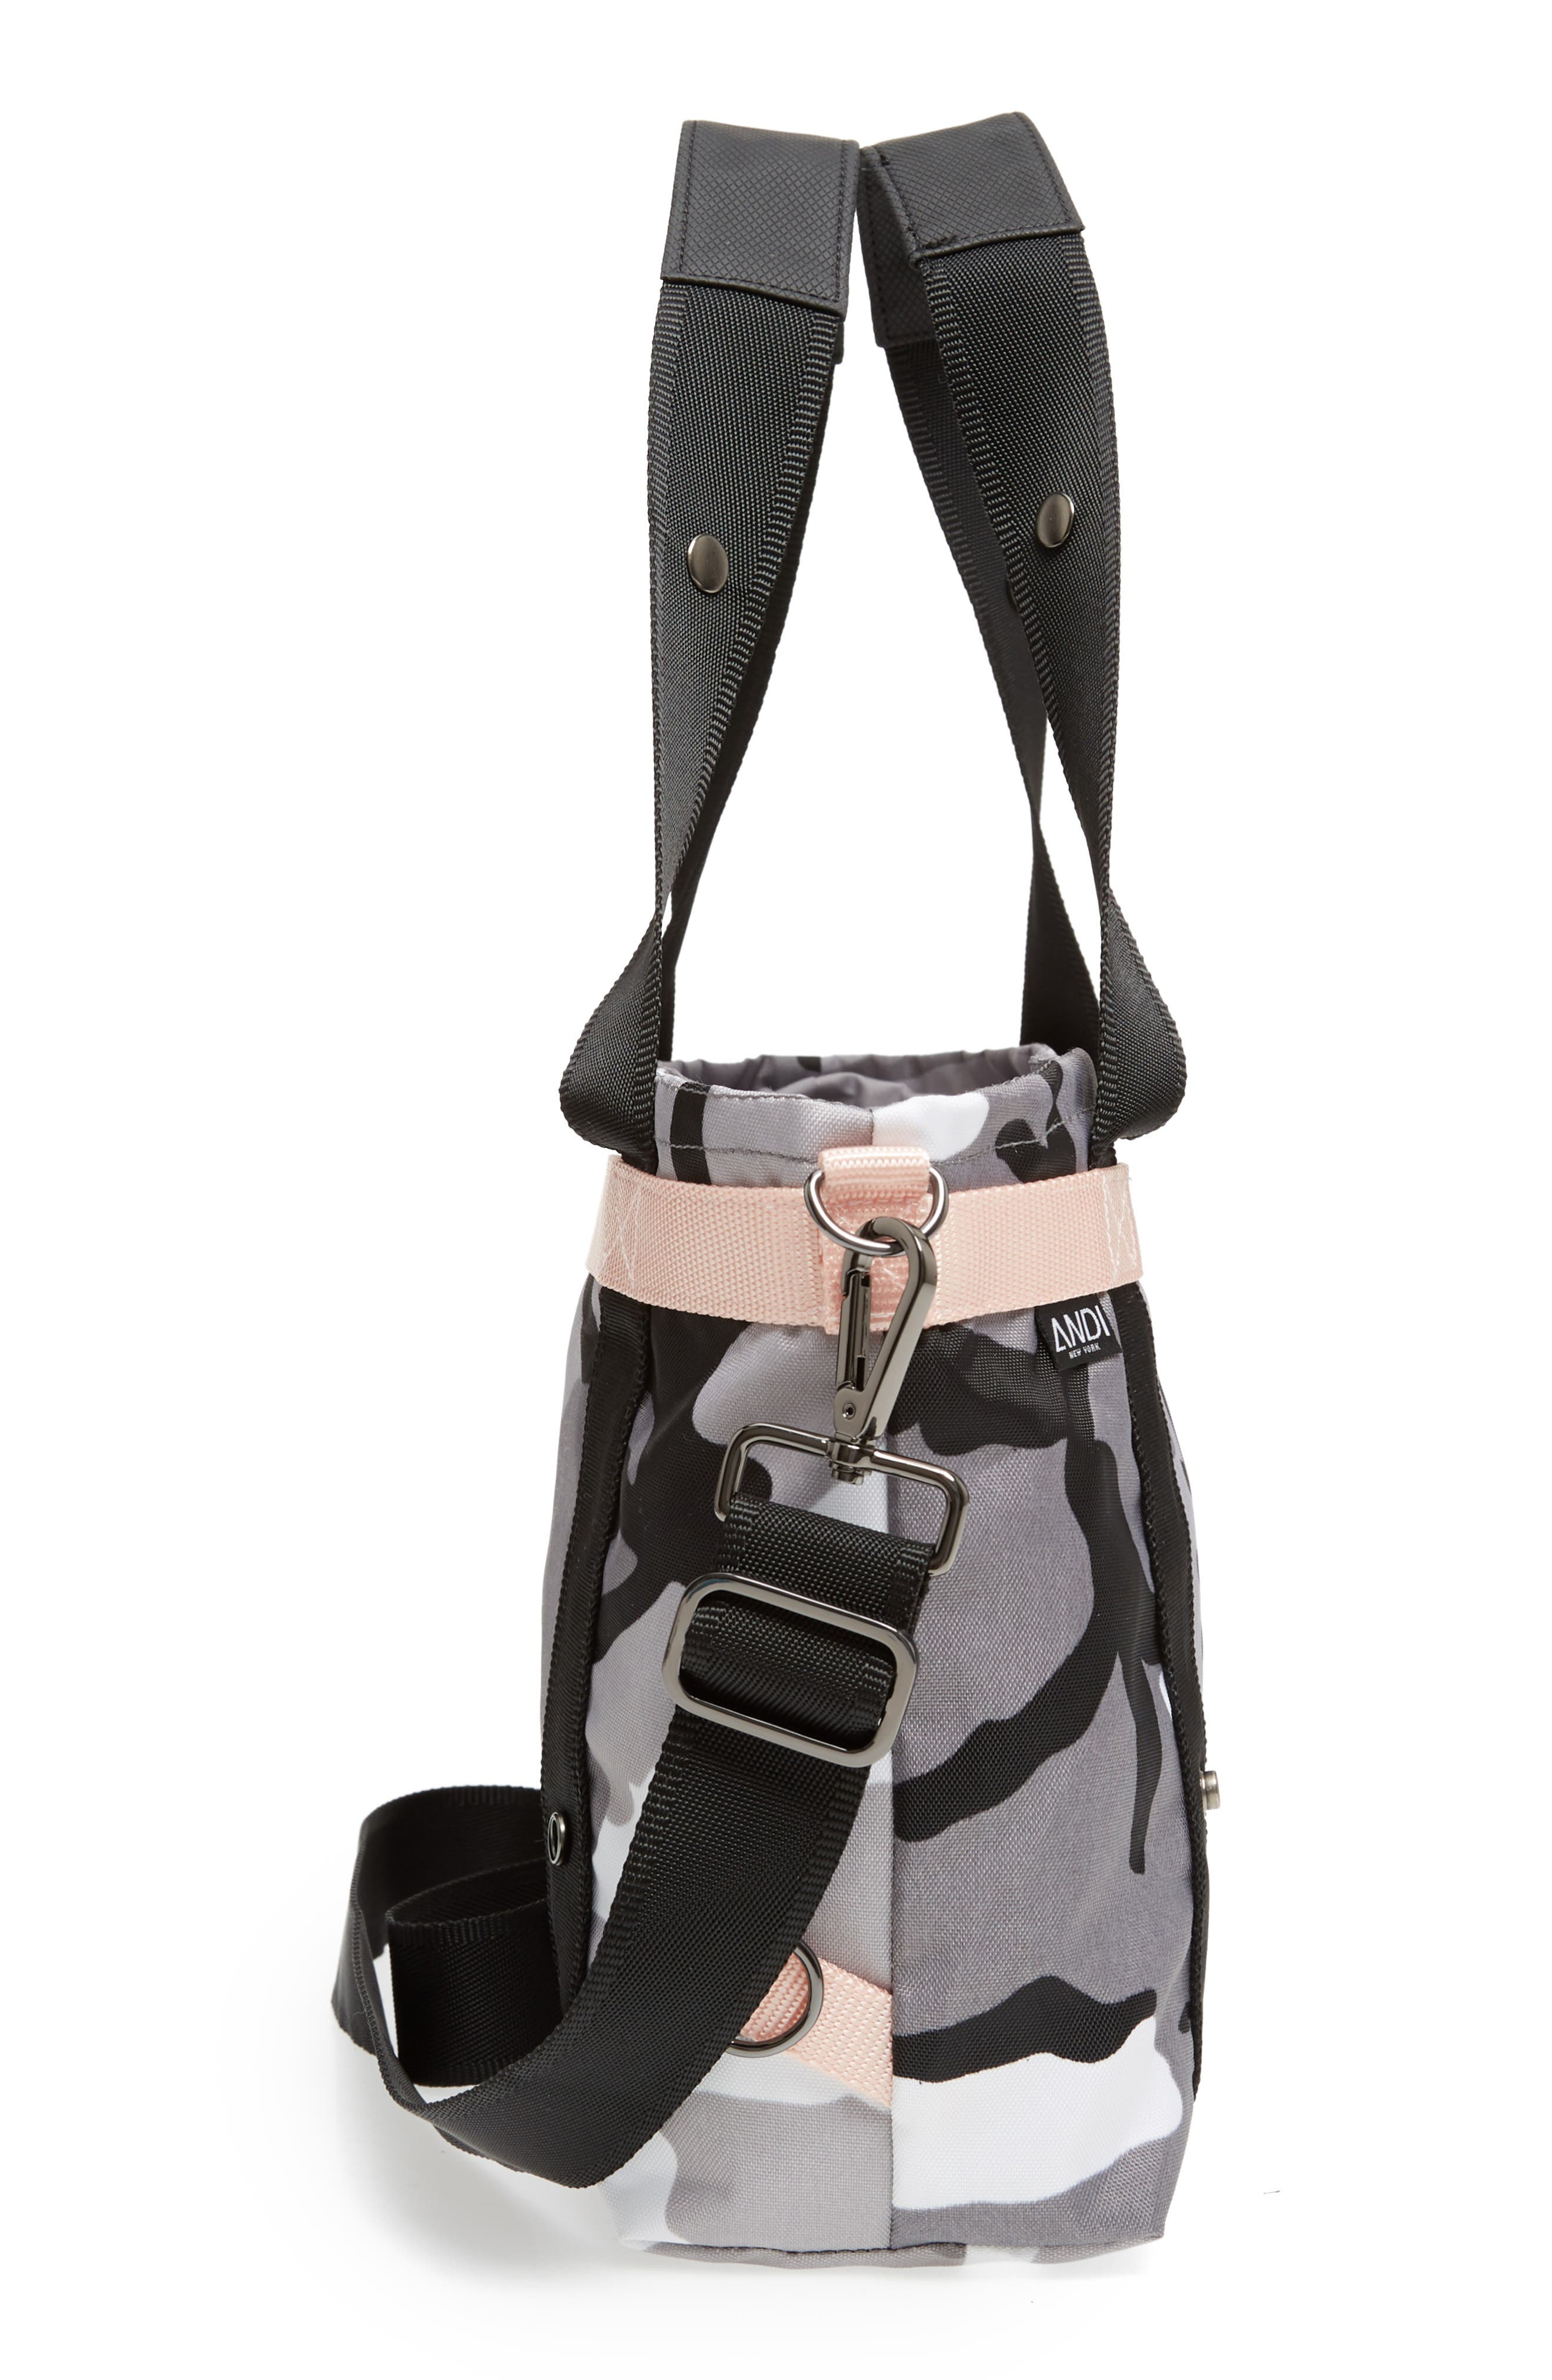 The ANDI Small Convertible Tote,                             Alternate thumbnail 6, color,                             BLACK/ WHITE/ GRAY/ PINK